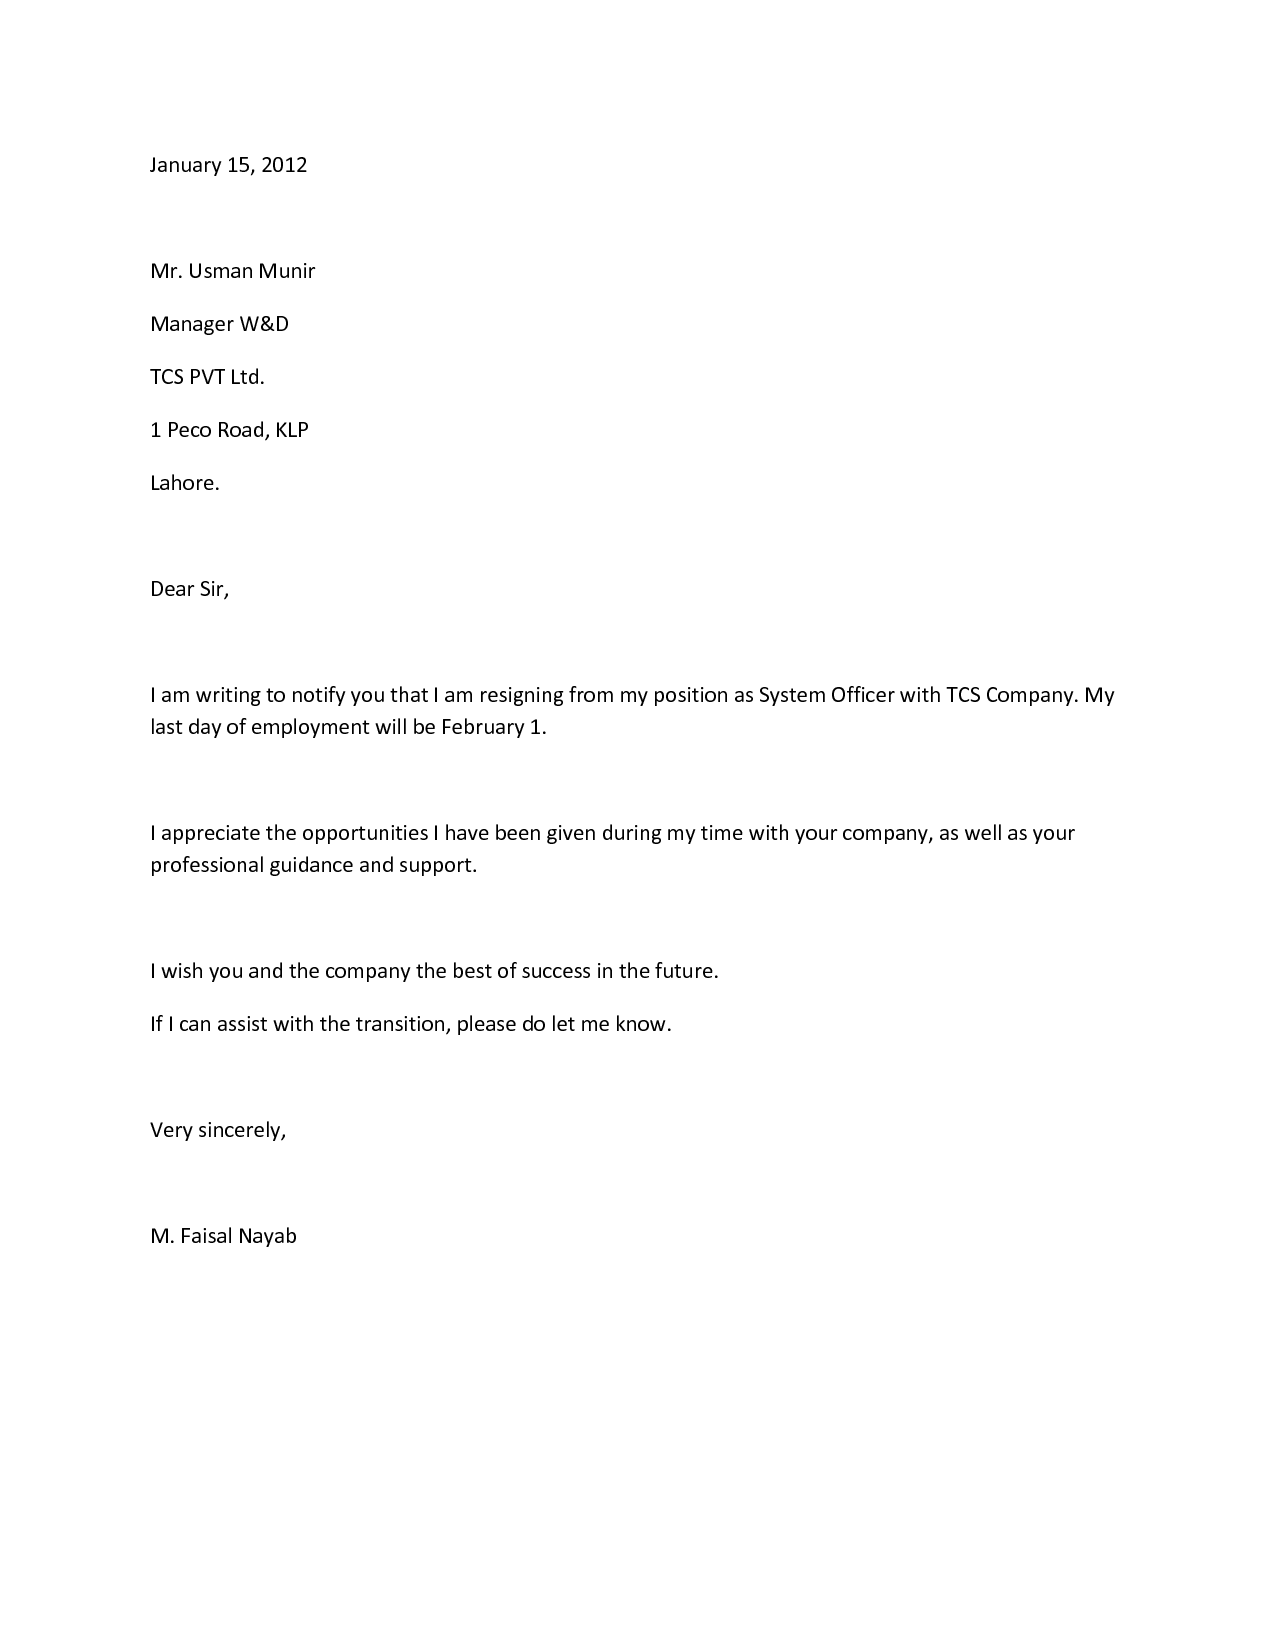 polite resignation letter bestdealformoneywriting a letter of how to write a proper resignation letter images